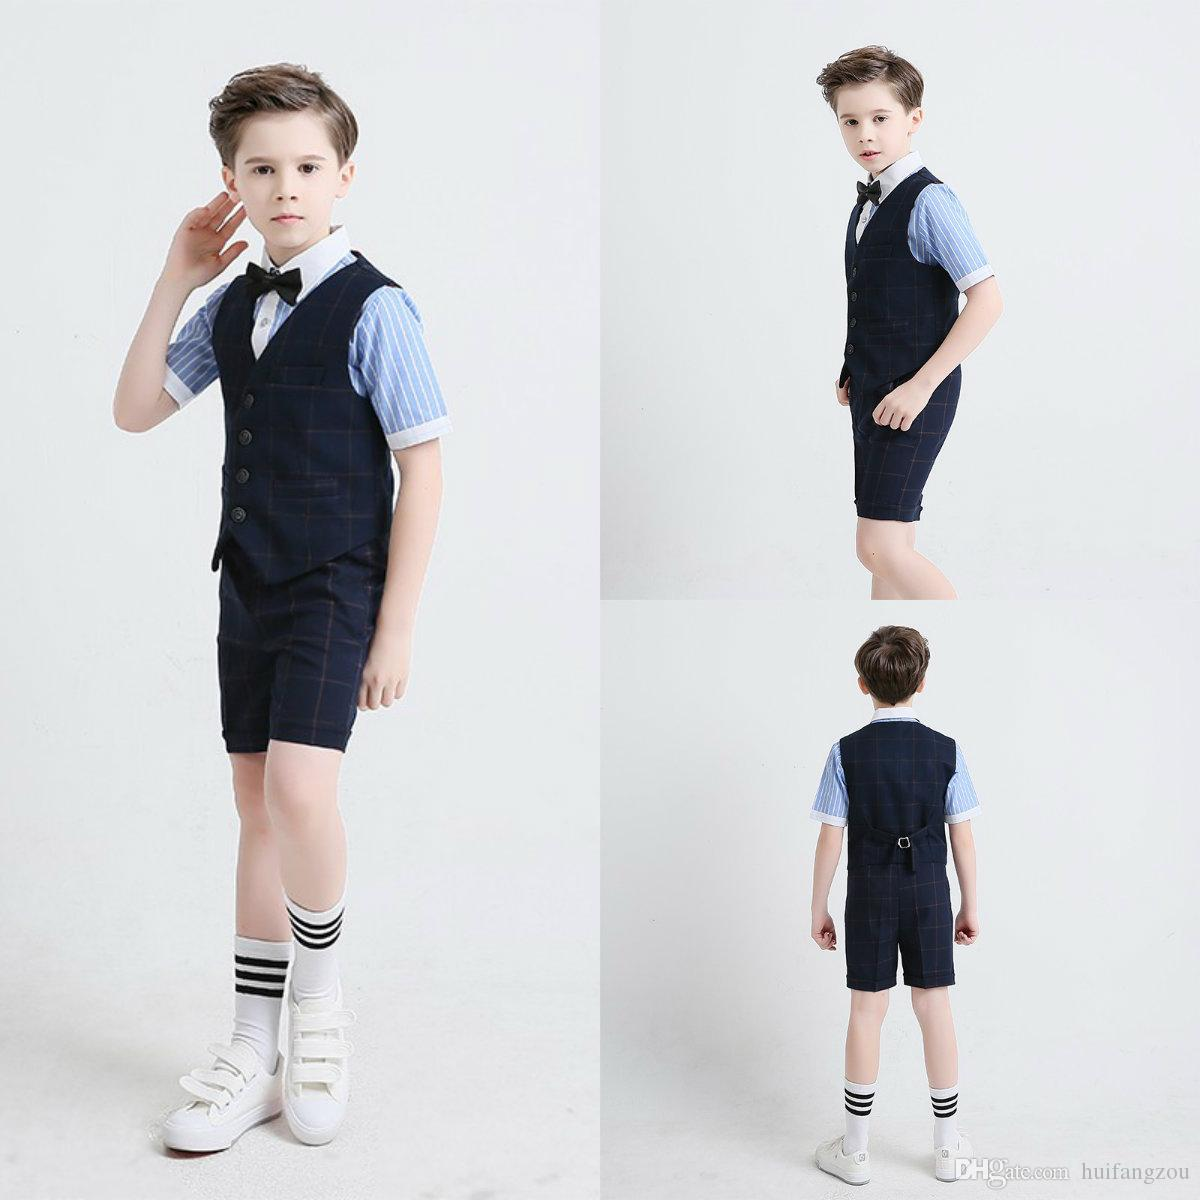 036309ff574 2018 Summer Three Pieces Boys Clothes Handsome Short Sleeve Striped Shirt  With Grid Knee Length Pants And Vest Boys Formal Suits Boys Formal Suits  Cheap ...